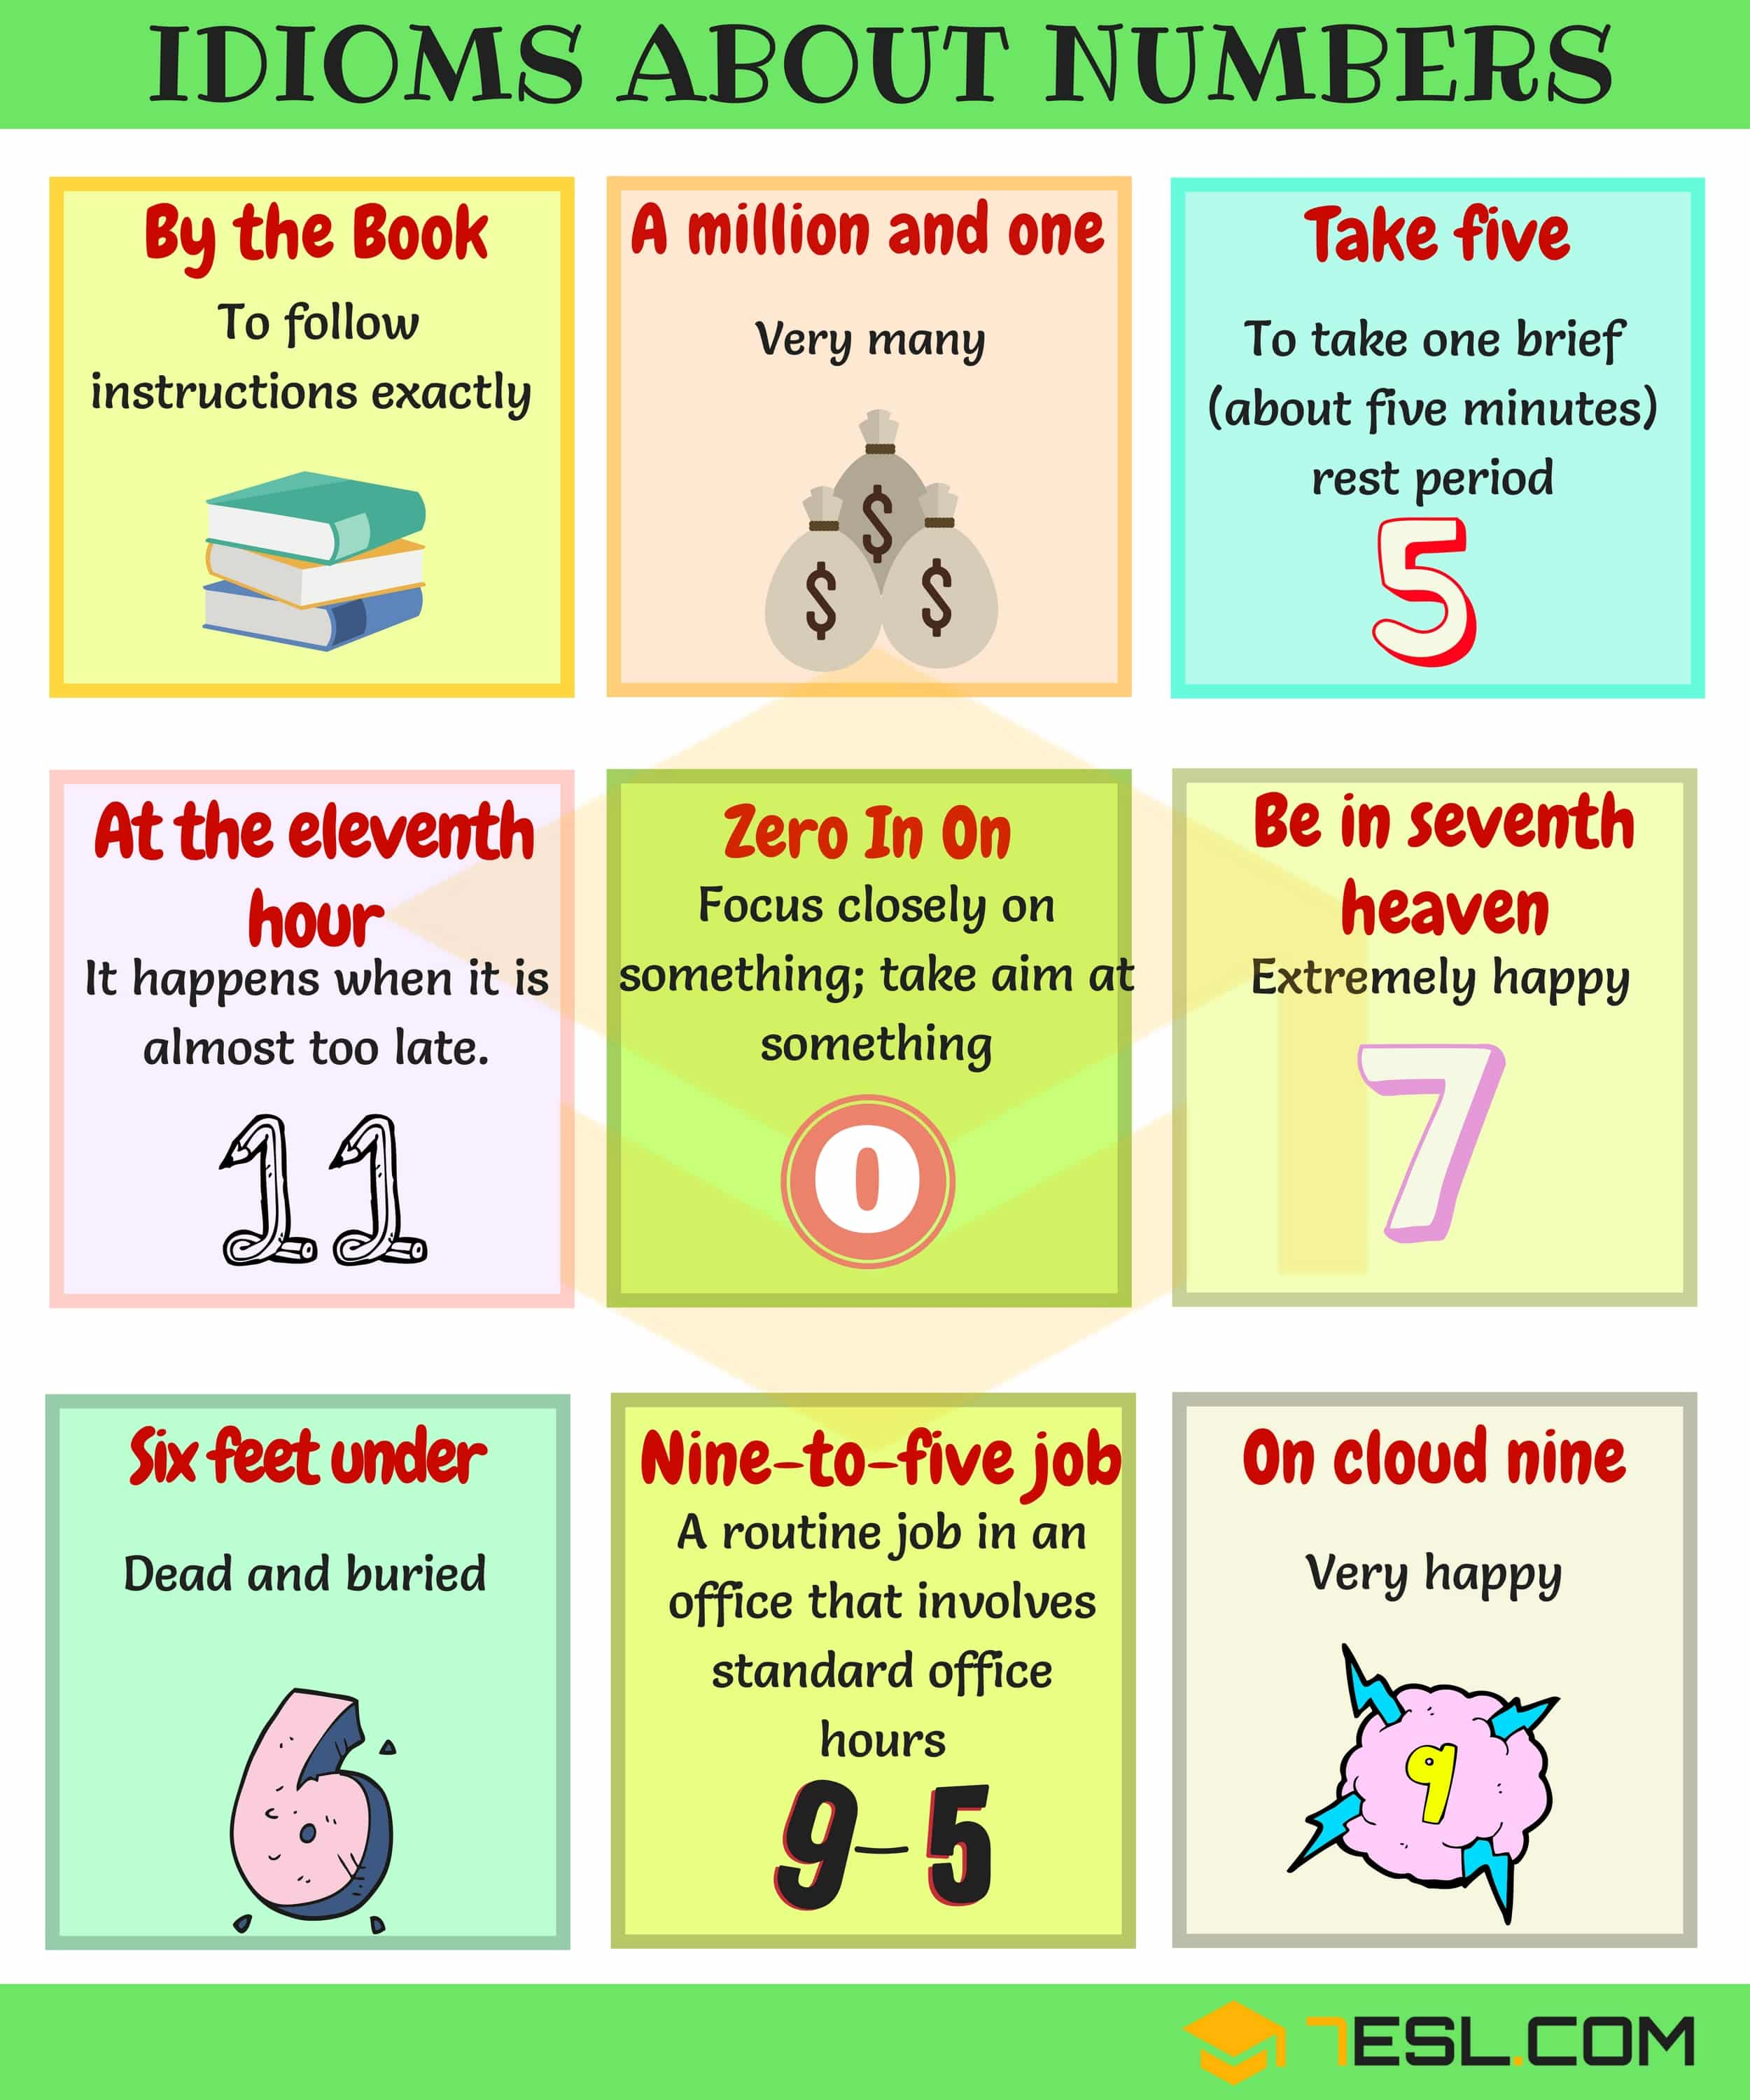 General Idioms | List of Idioms with Meaning and Examples 2